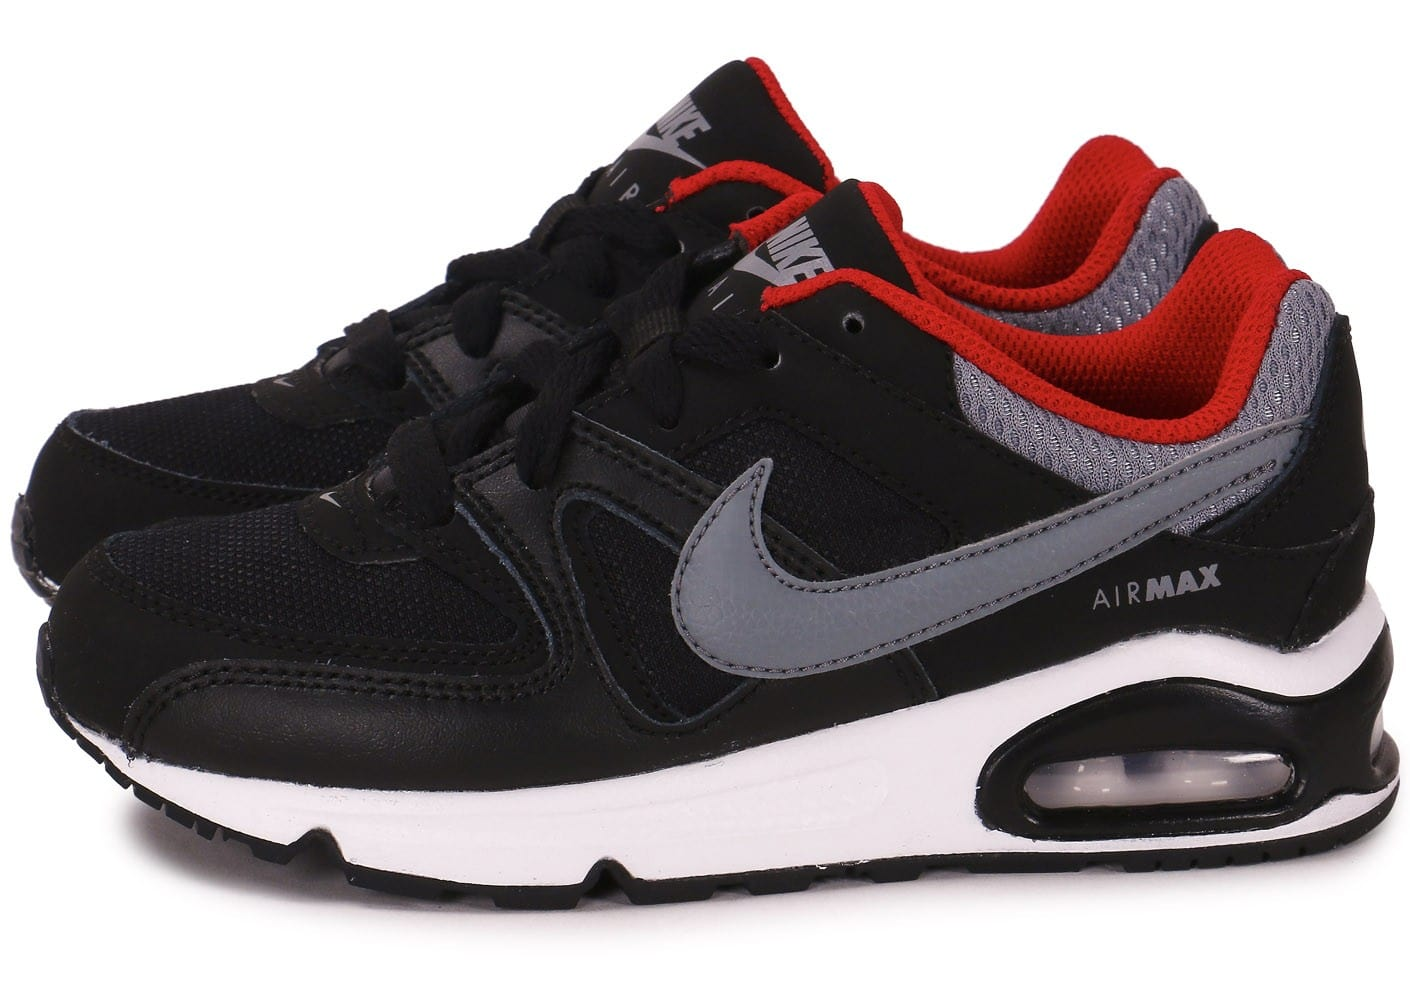 Nike Air Max Command chaussures noir gris rouge SO55408913